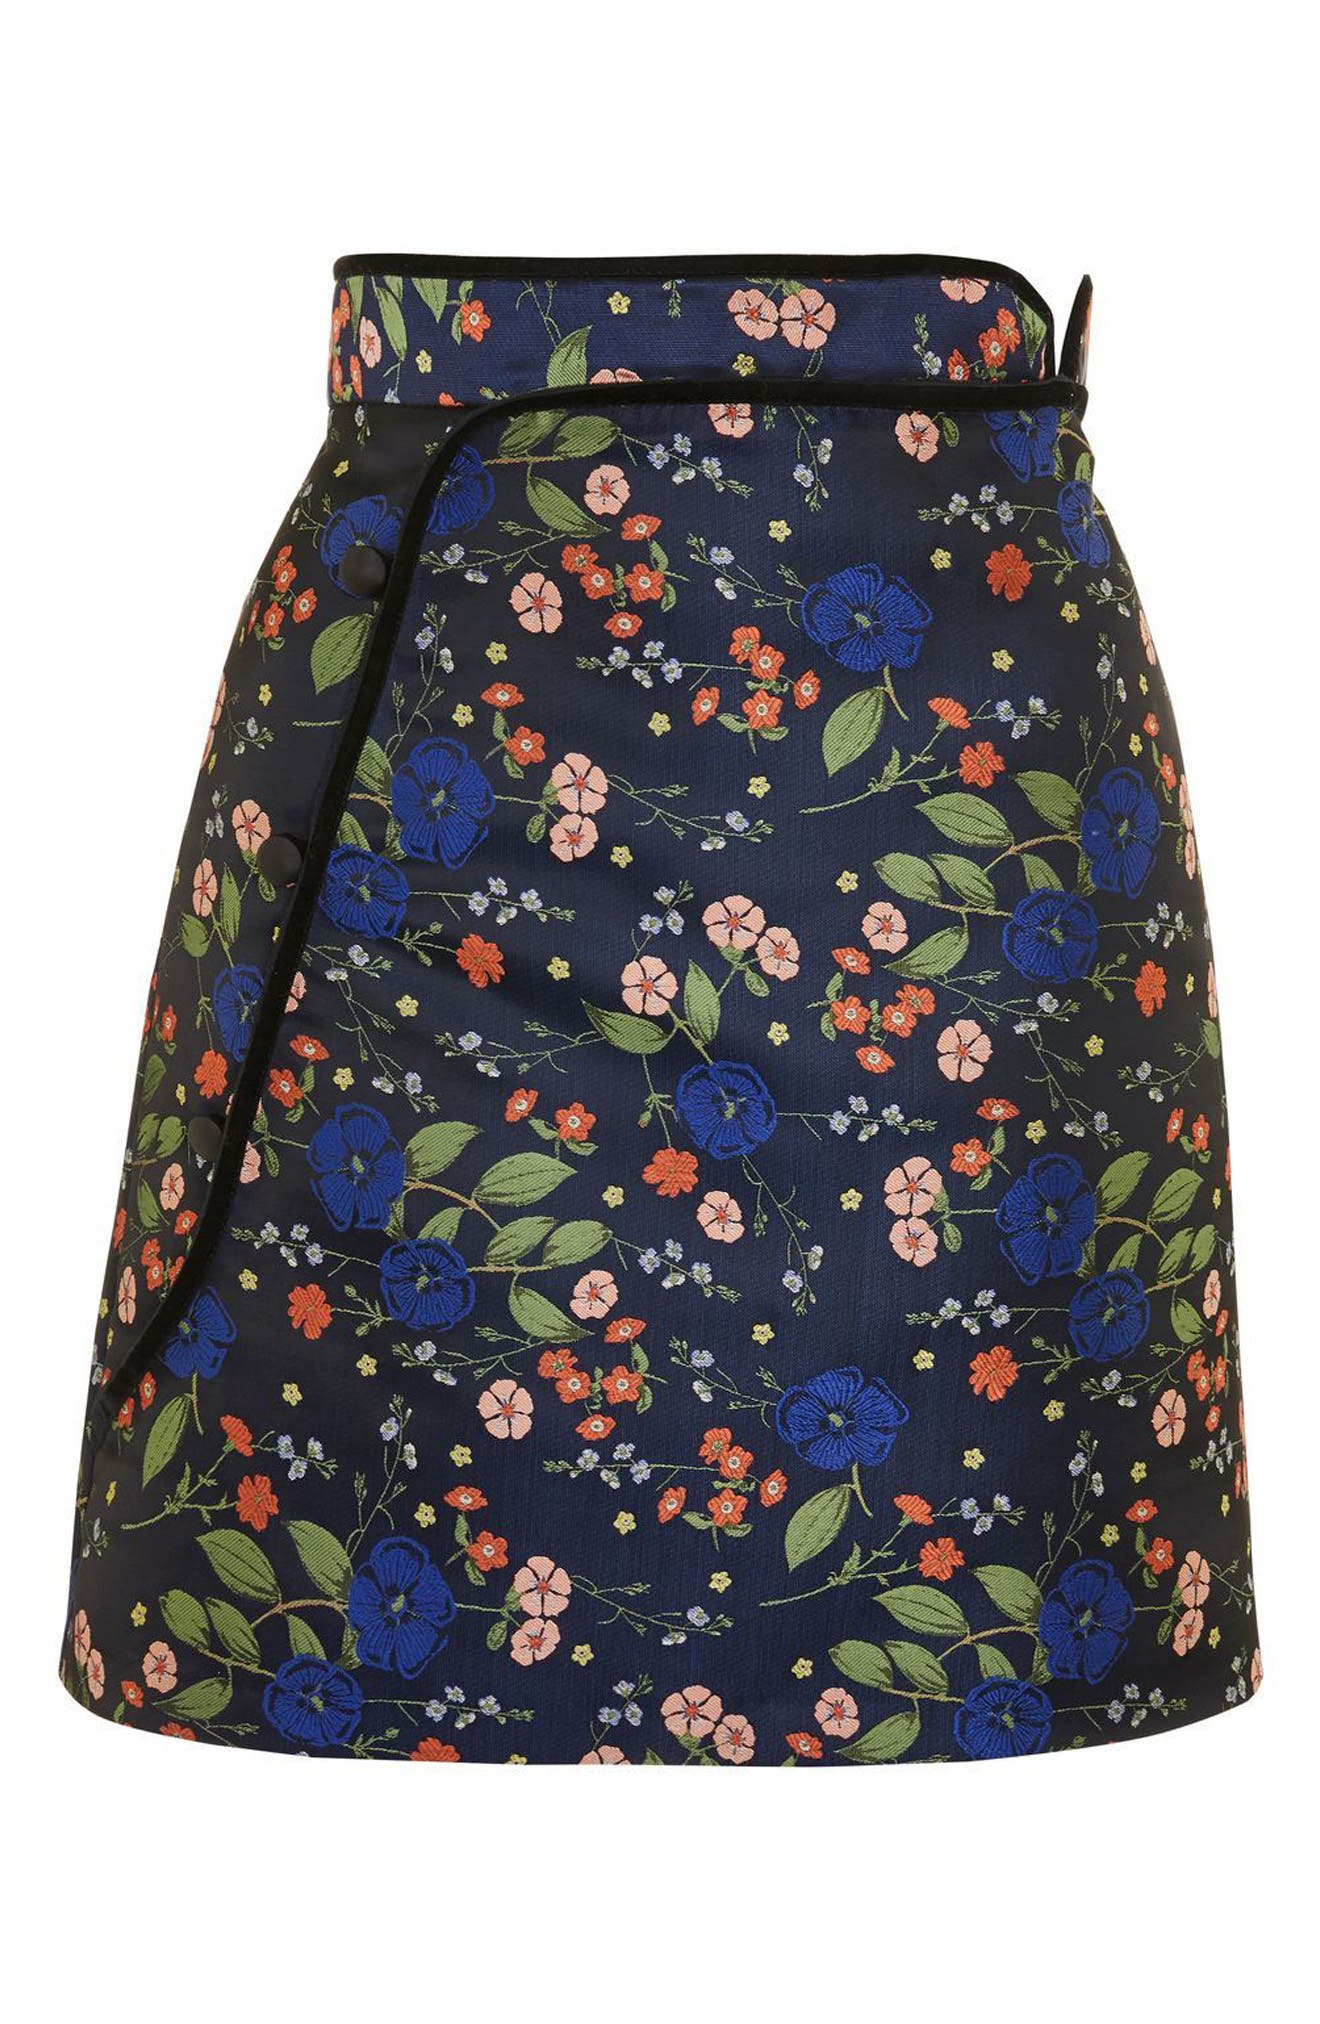 Satin Jacquard Wrap Skirt,                             Alternate thumbnail 3, color,                             Navy Blue Multi